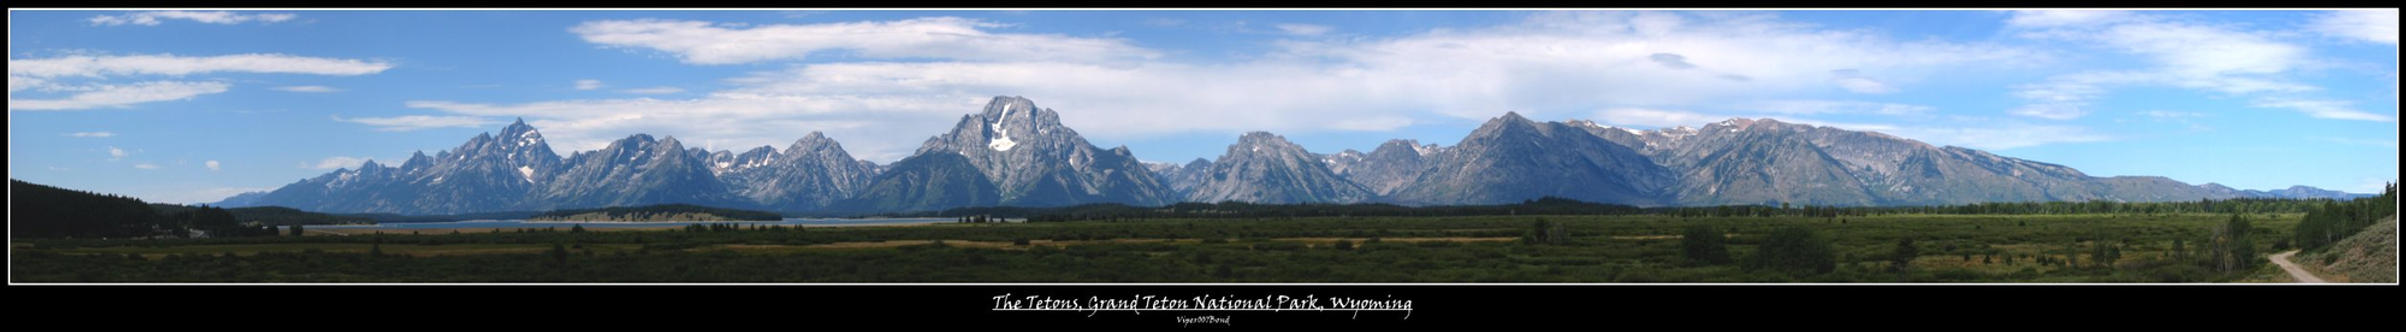 The Tetons by viper007bond